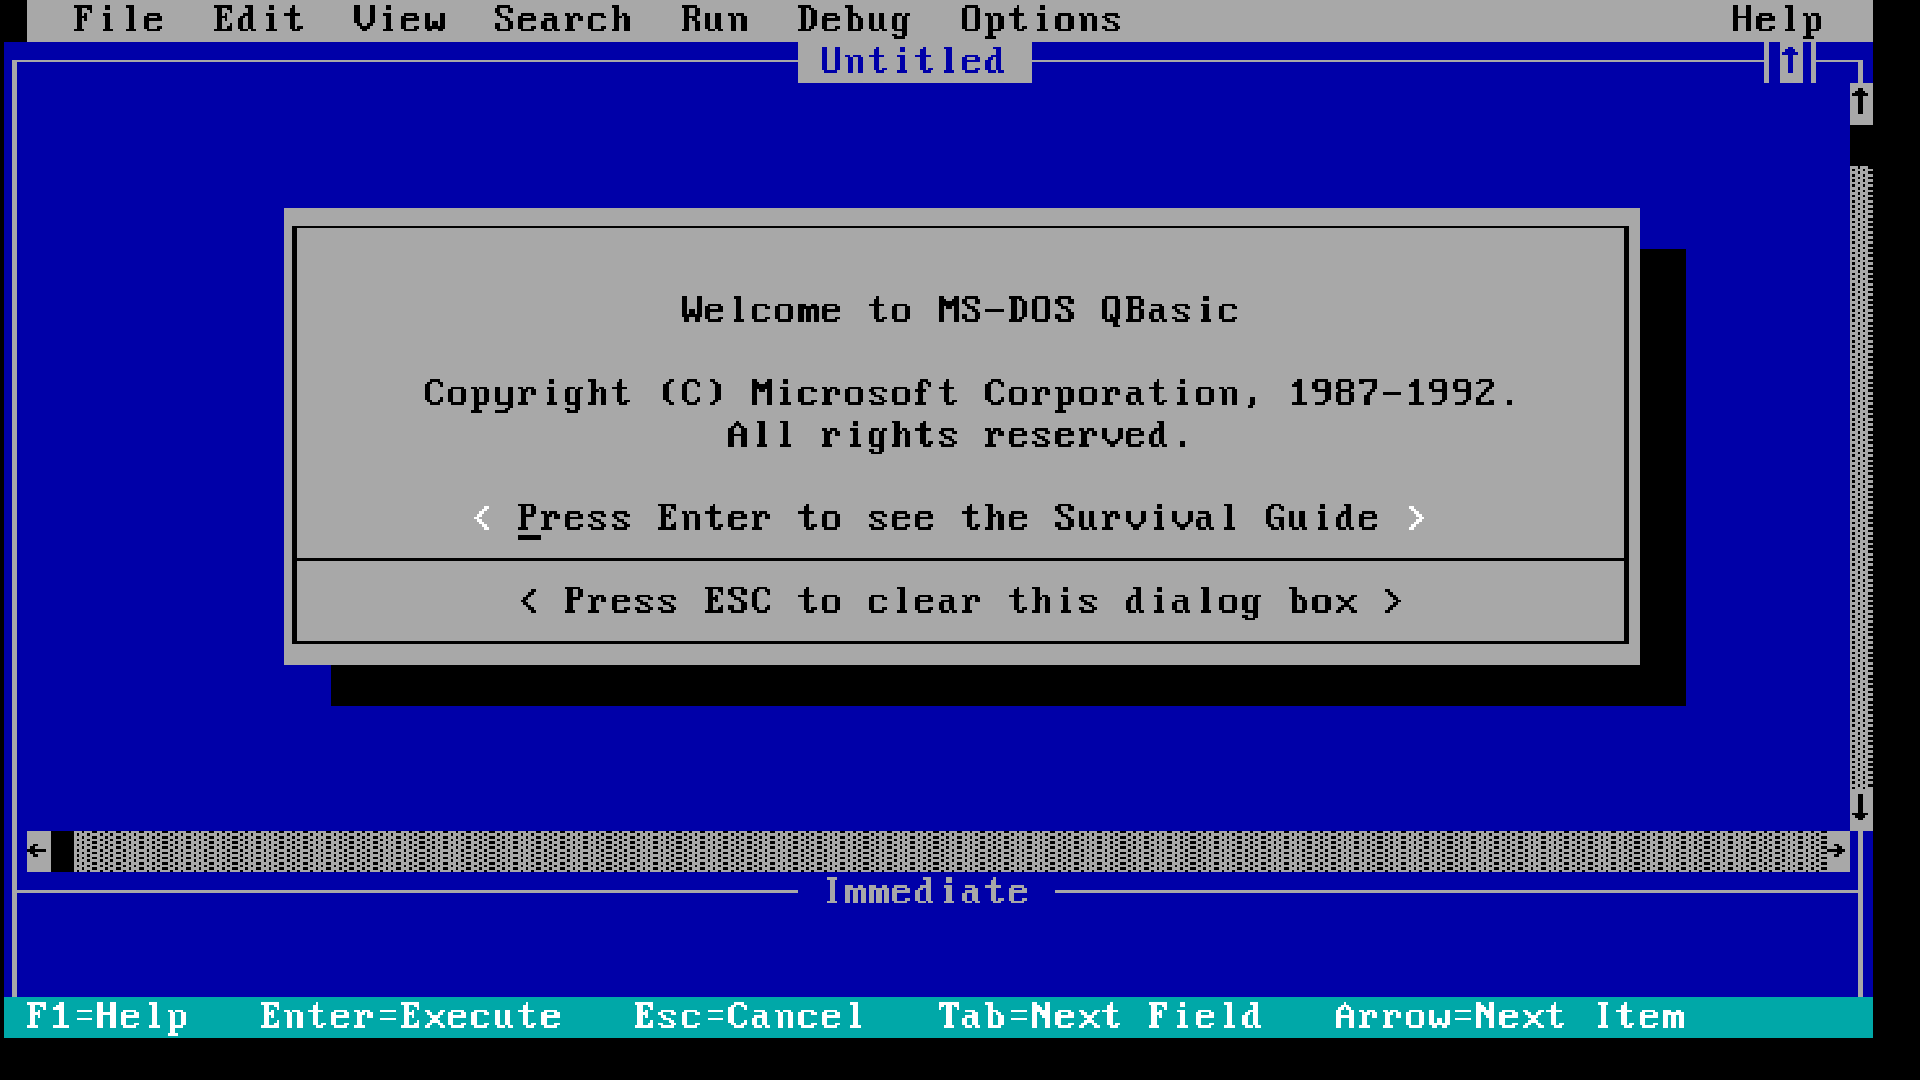 QBASIC for MS-DOS